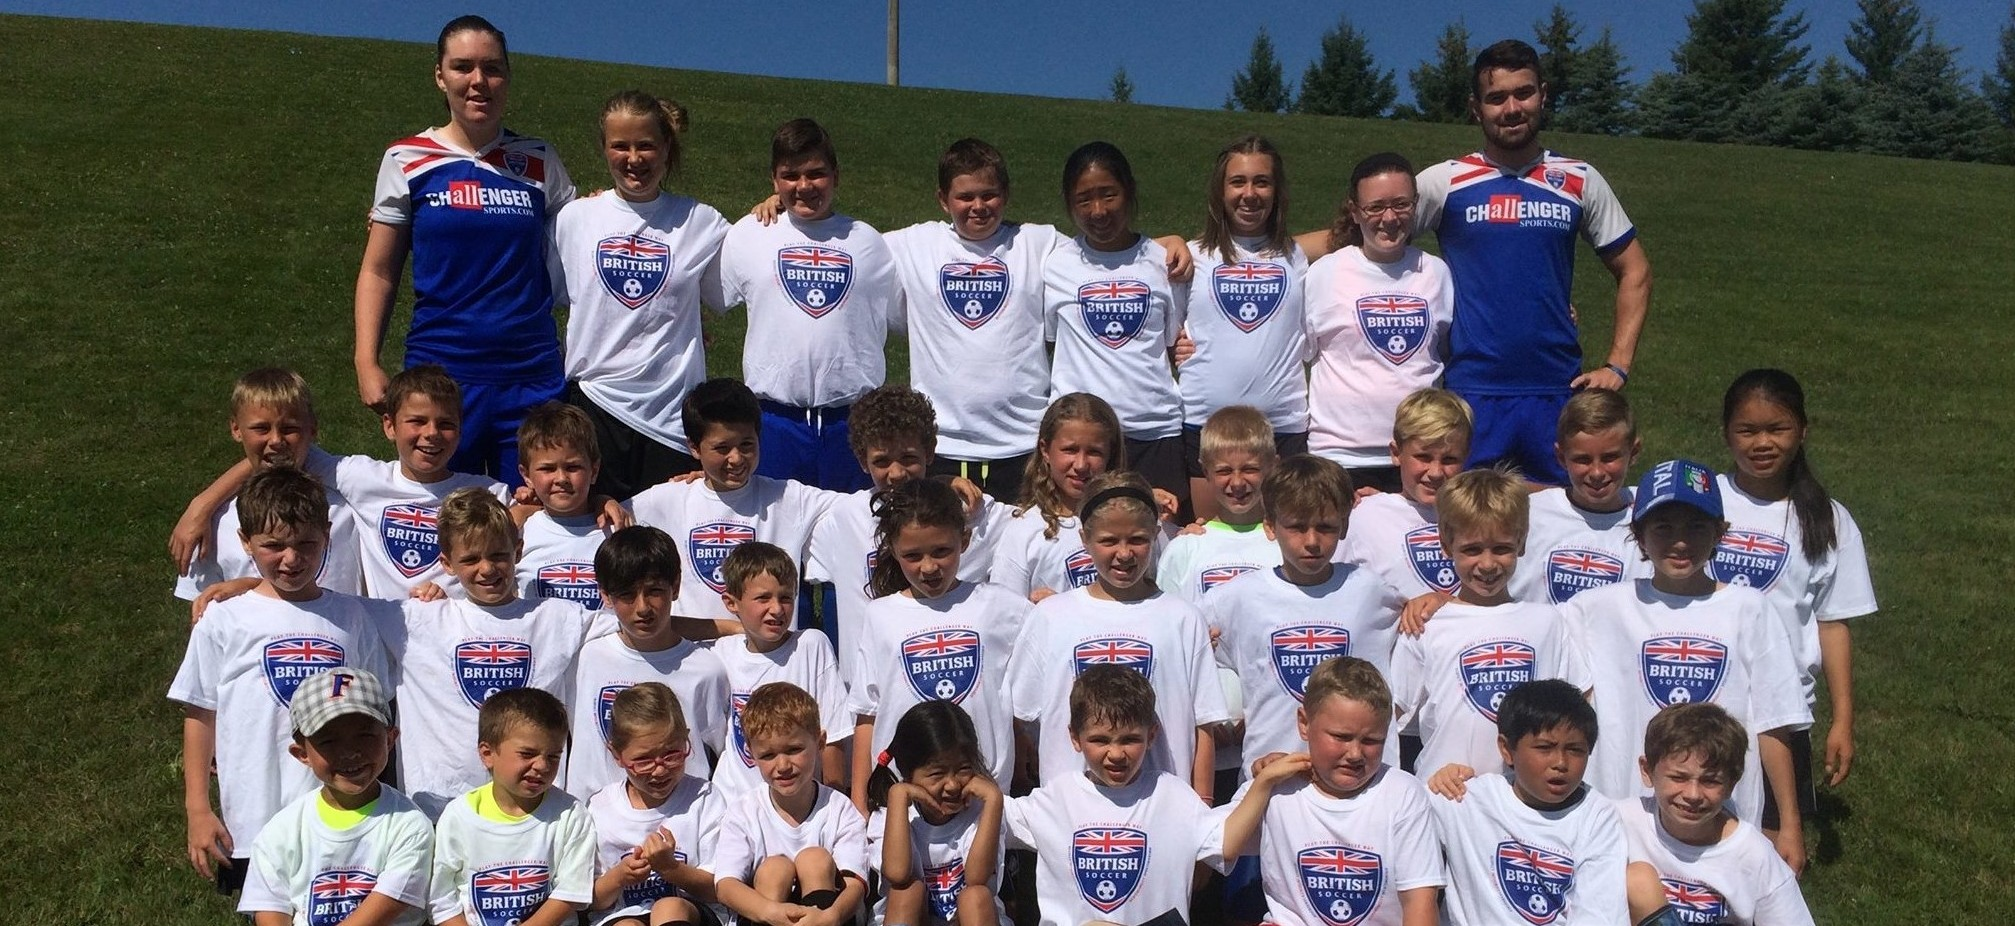 BRITISH SOCCER CAMP – Registration Now Open for July 2018